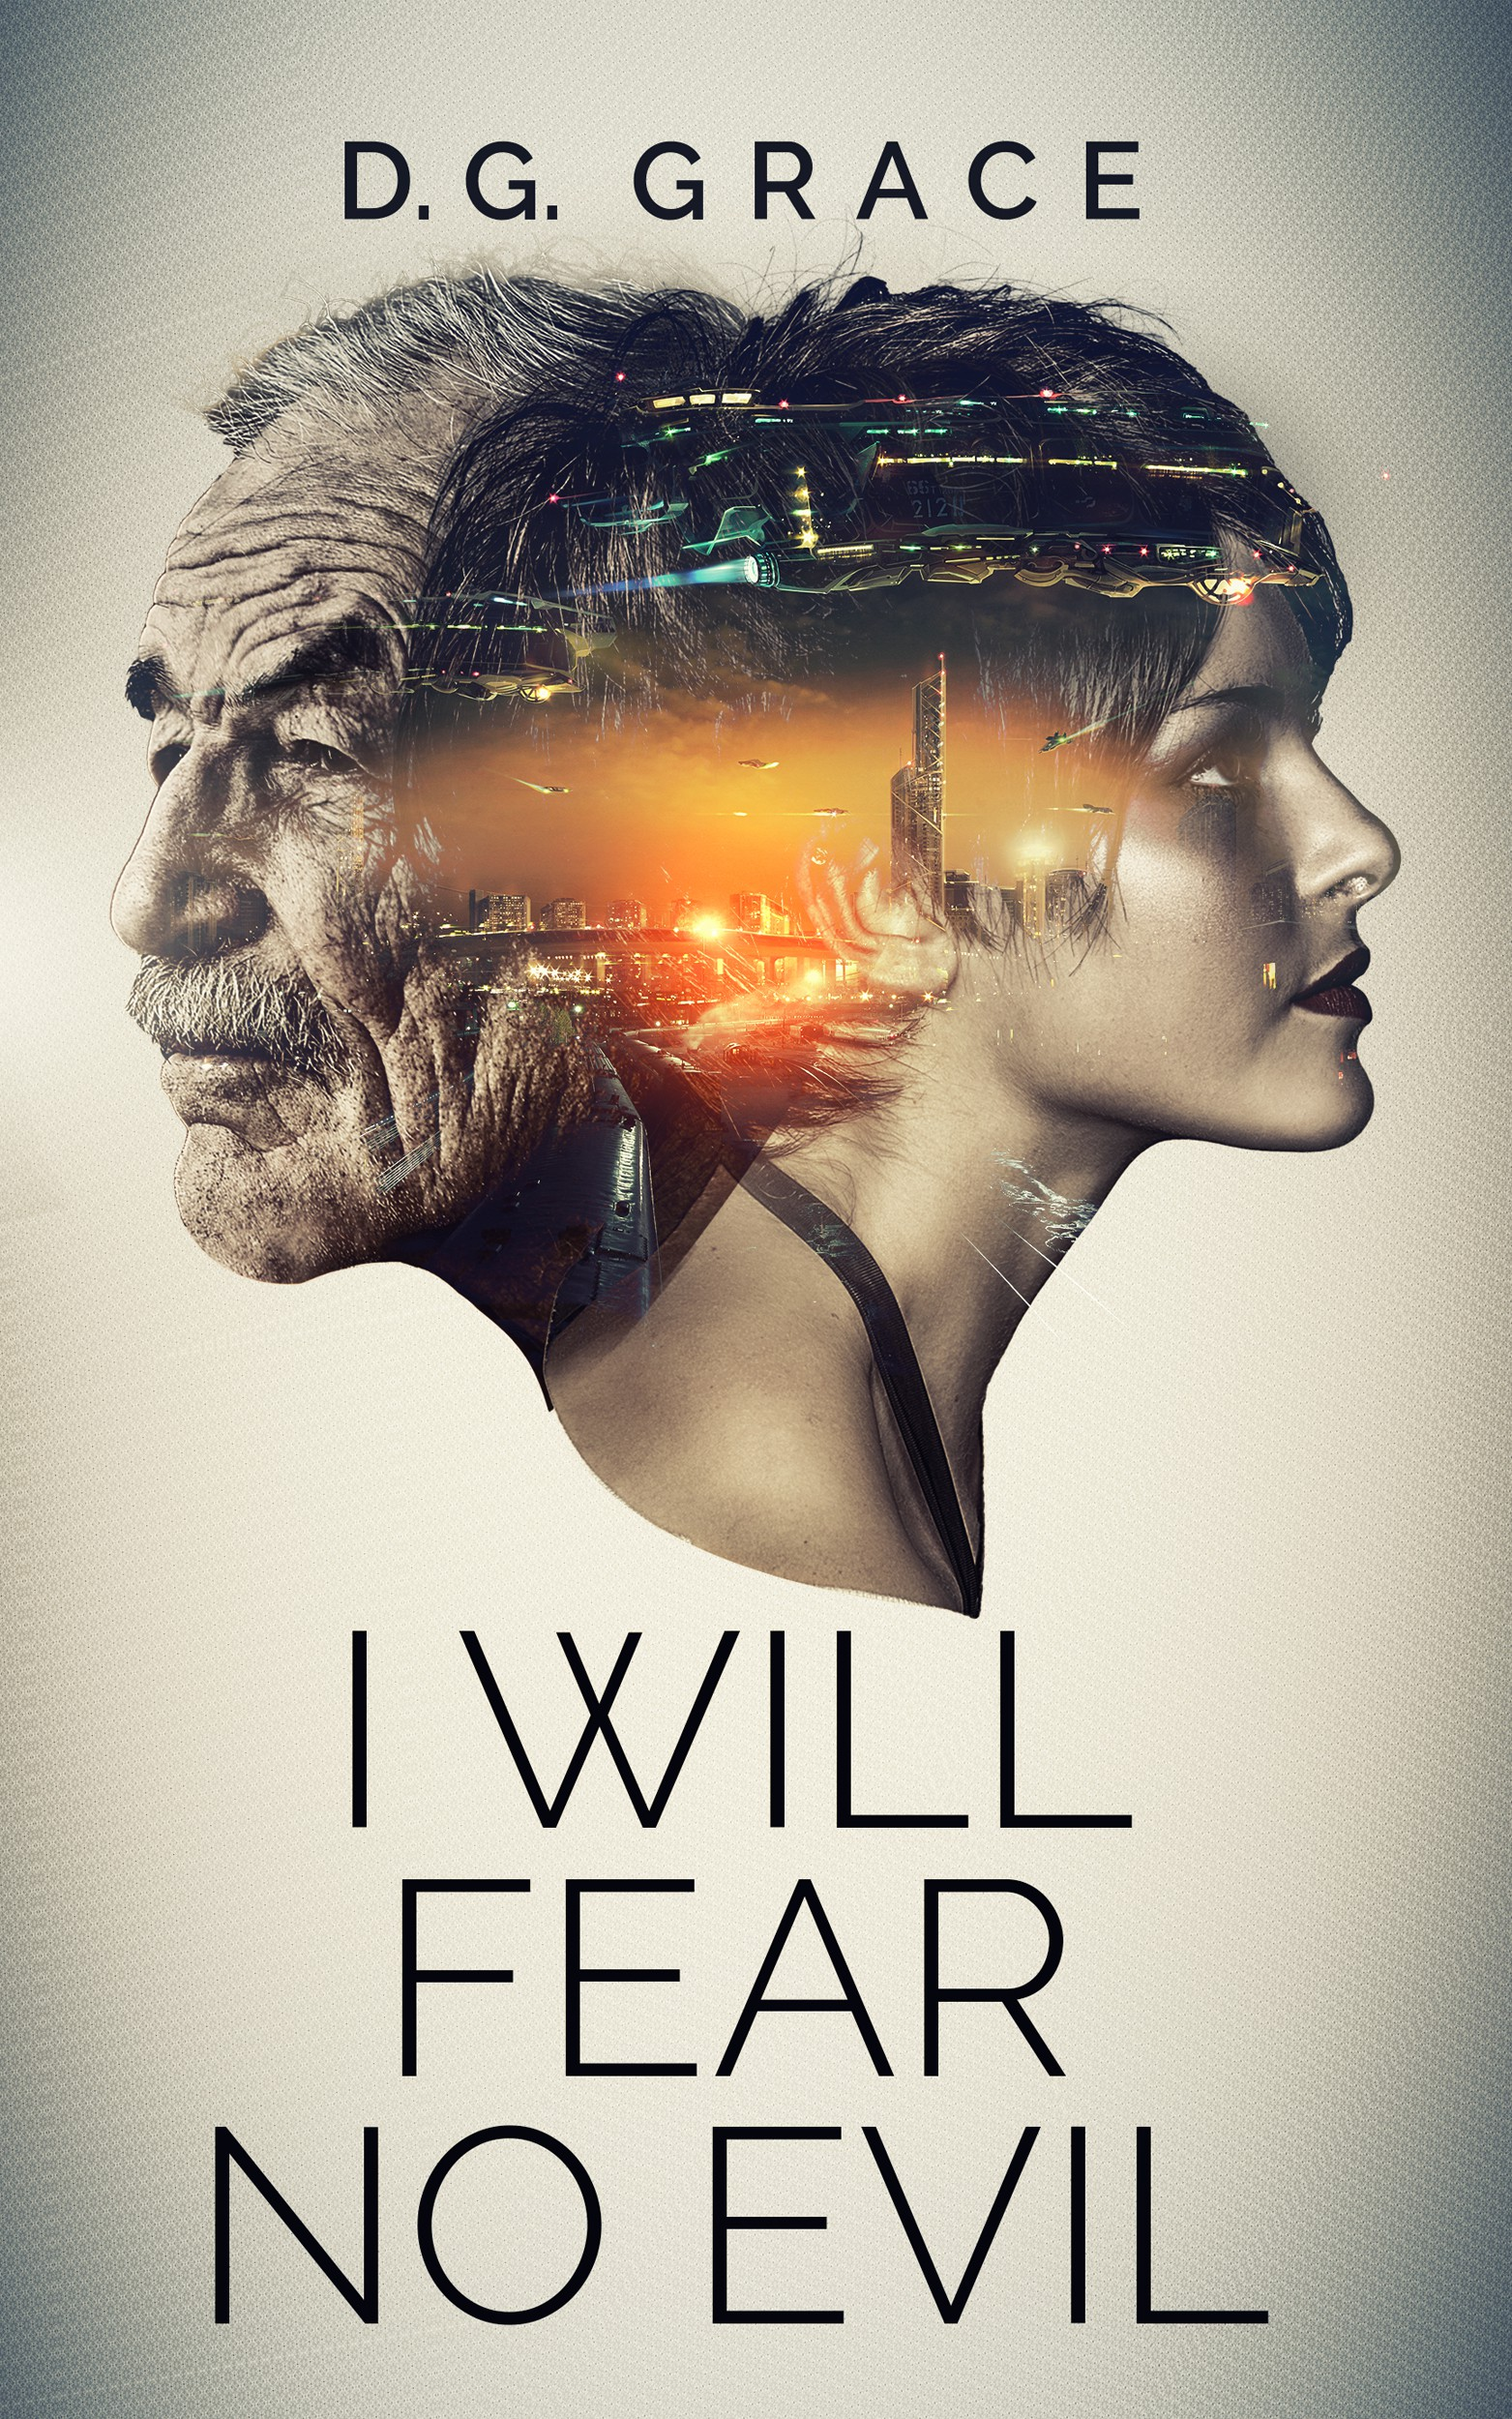 I Will Fear No Evil - e-book cover for a near-future SF novel dealing with gender identity.